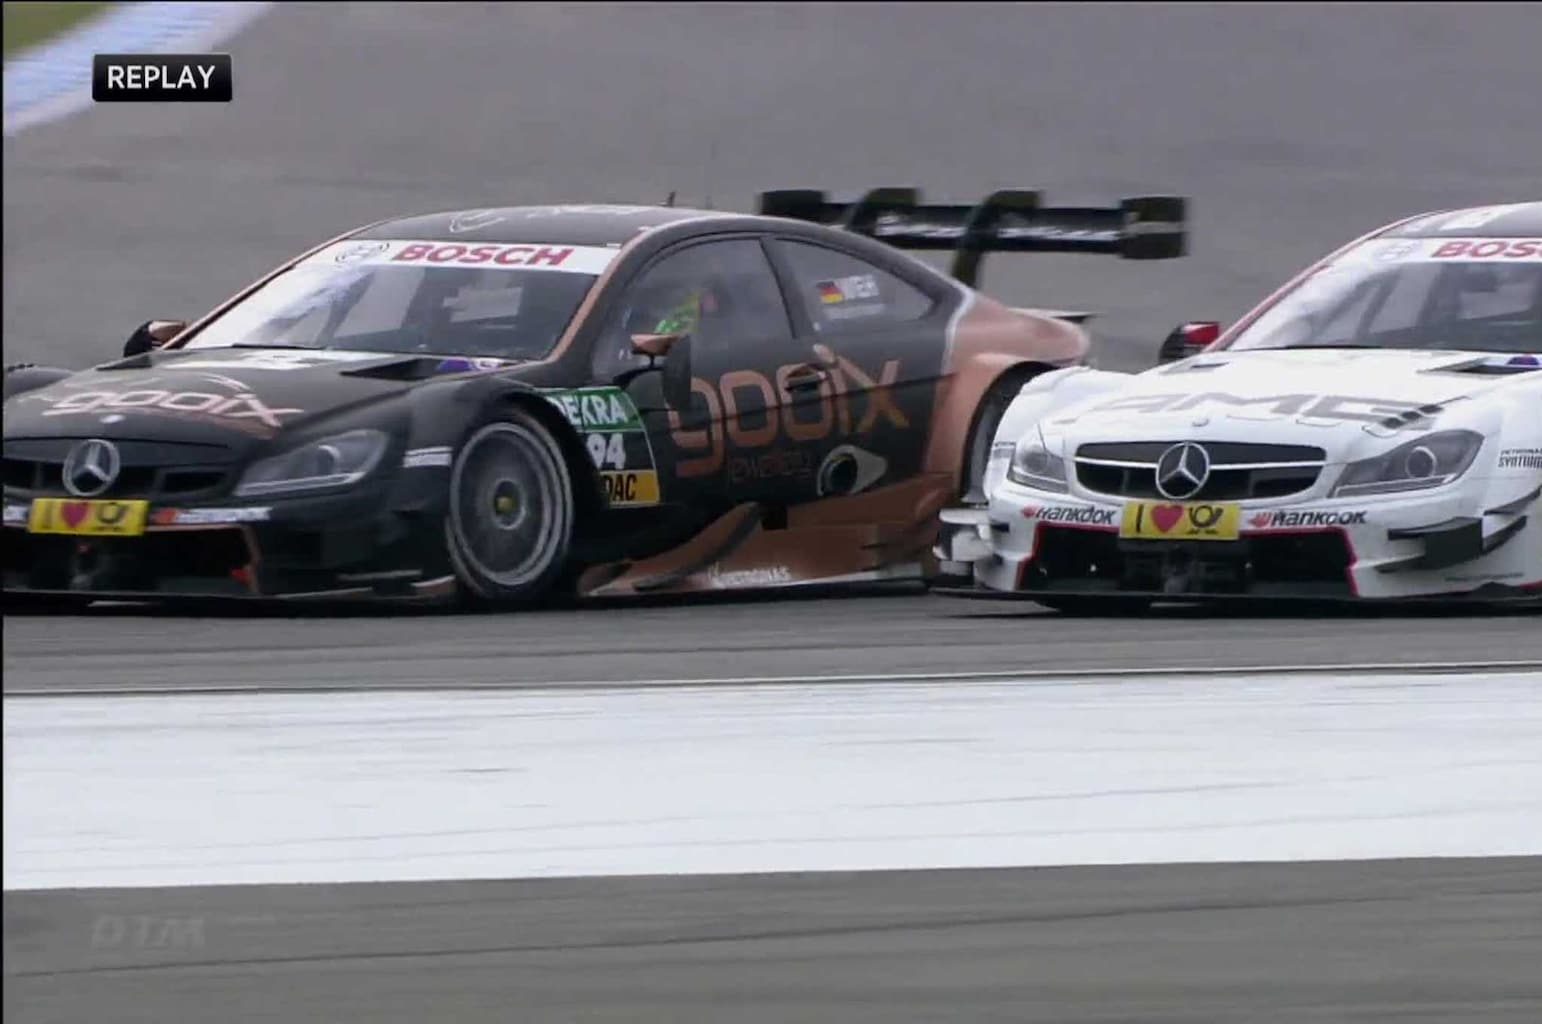 003 10 best new videos on motor trend ondemand in november 2015 dtm championship